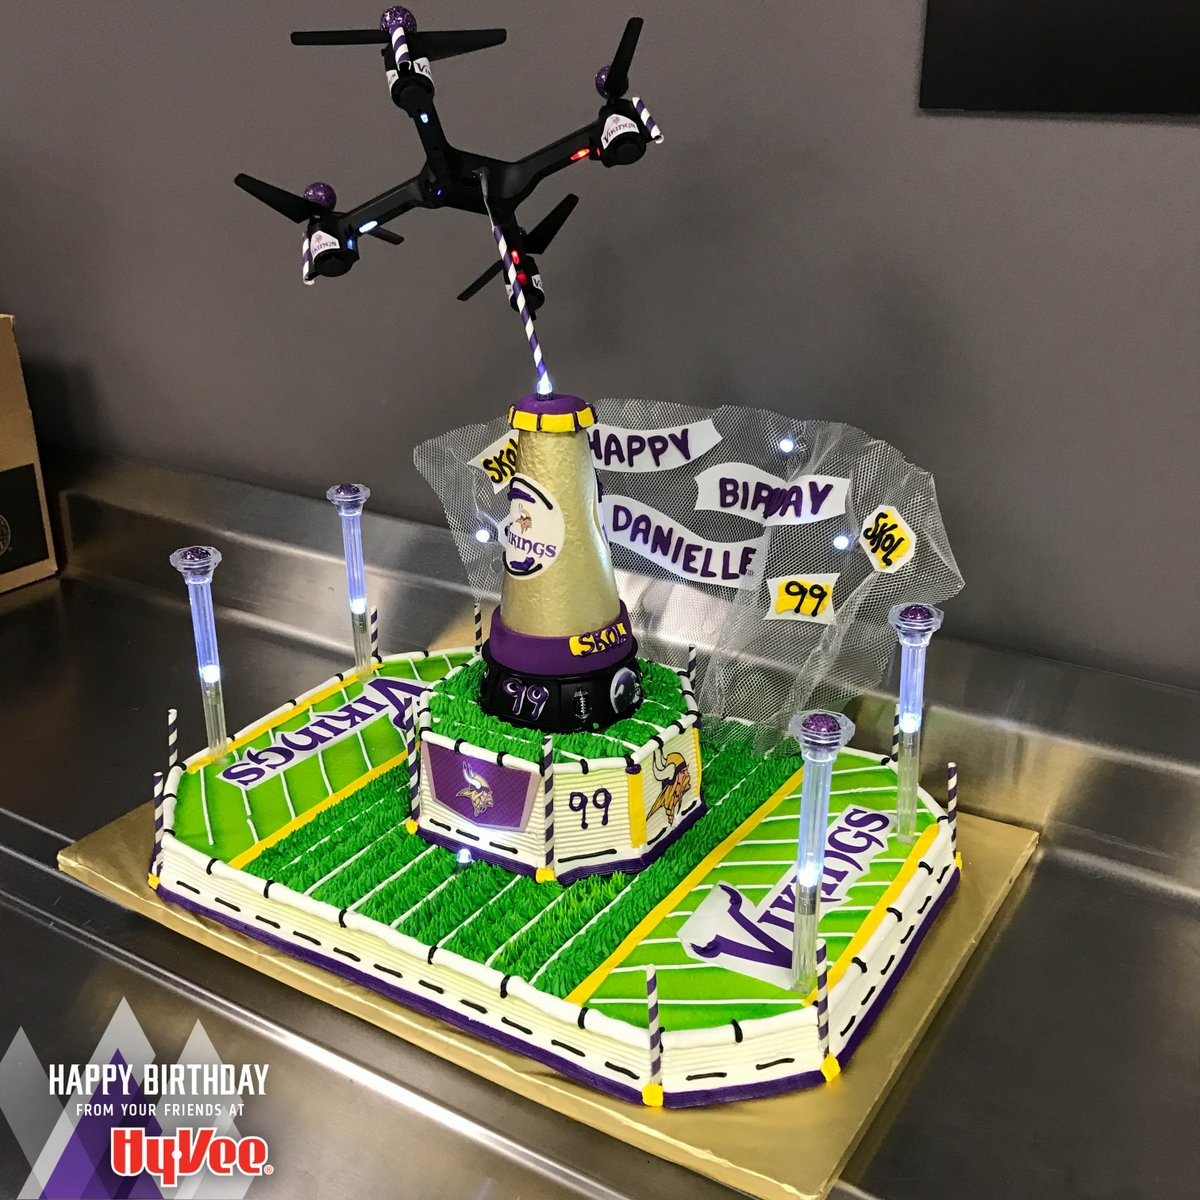 Sensational Jerry Khachoyan On Twitter Thats A Cool Cake Happy Birthday Birthday Cards Printable Opercafe Filternl